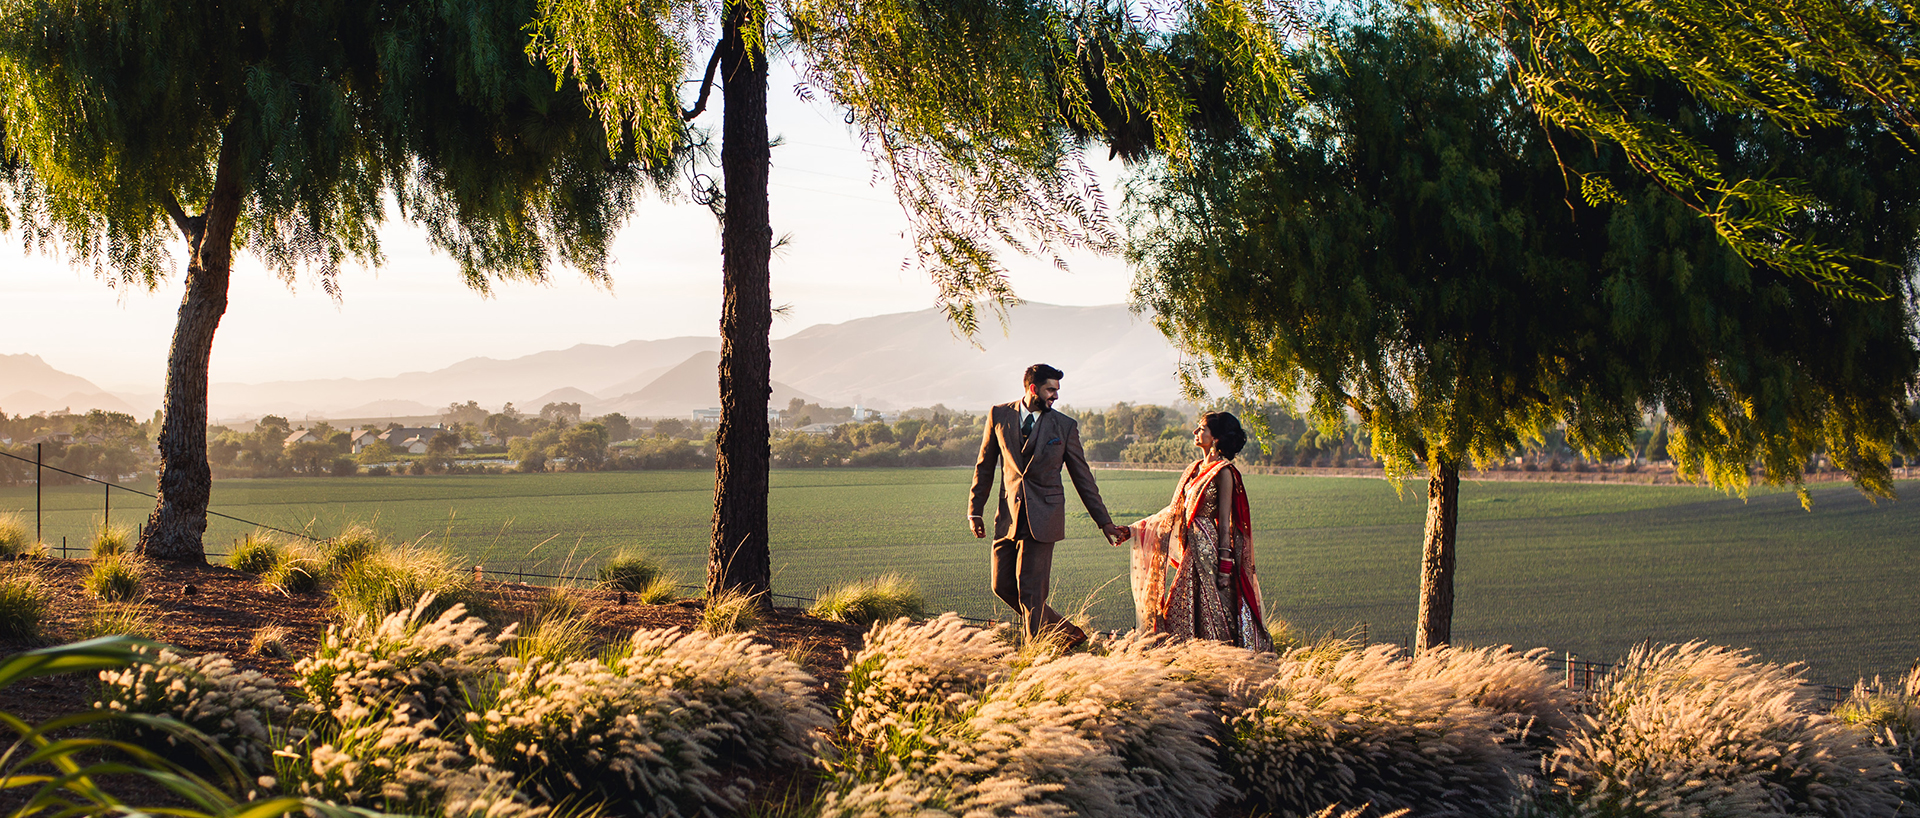 Ricky + Preeti | San Luis Obispo, California | Green Gate Ranch & Vineyard